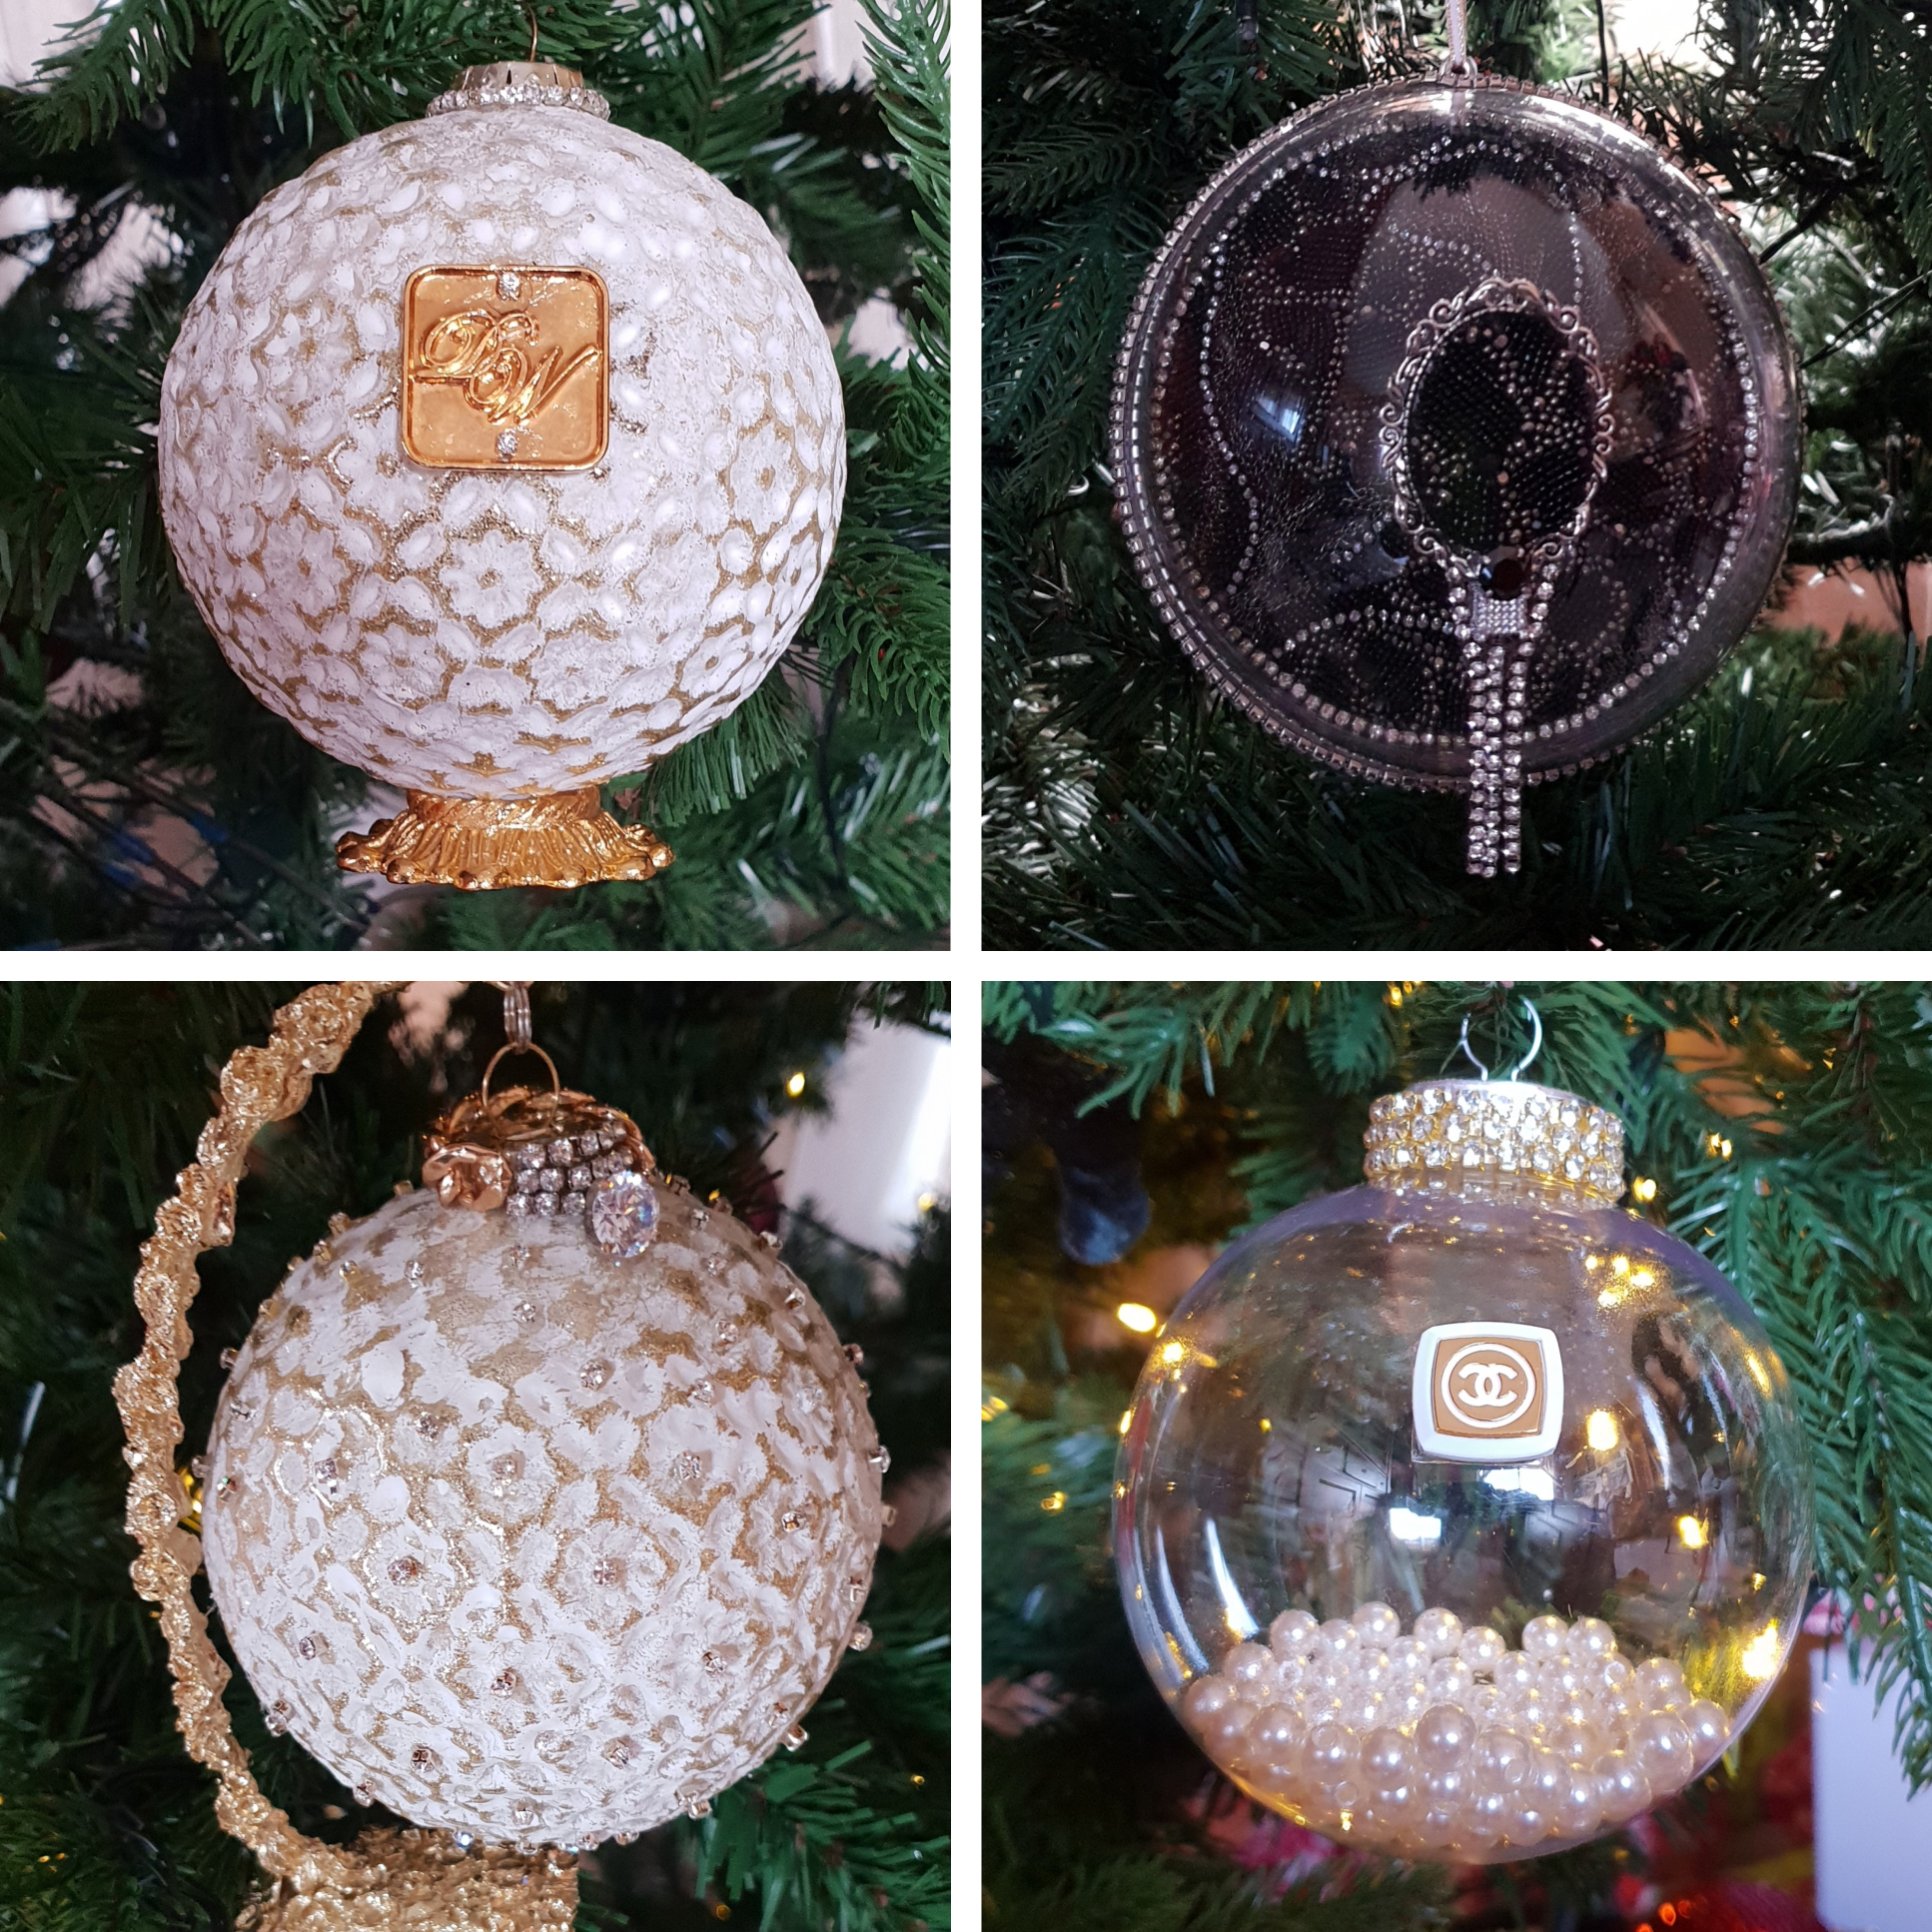 Baubles collage